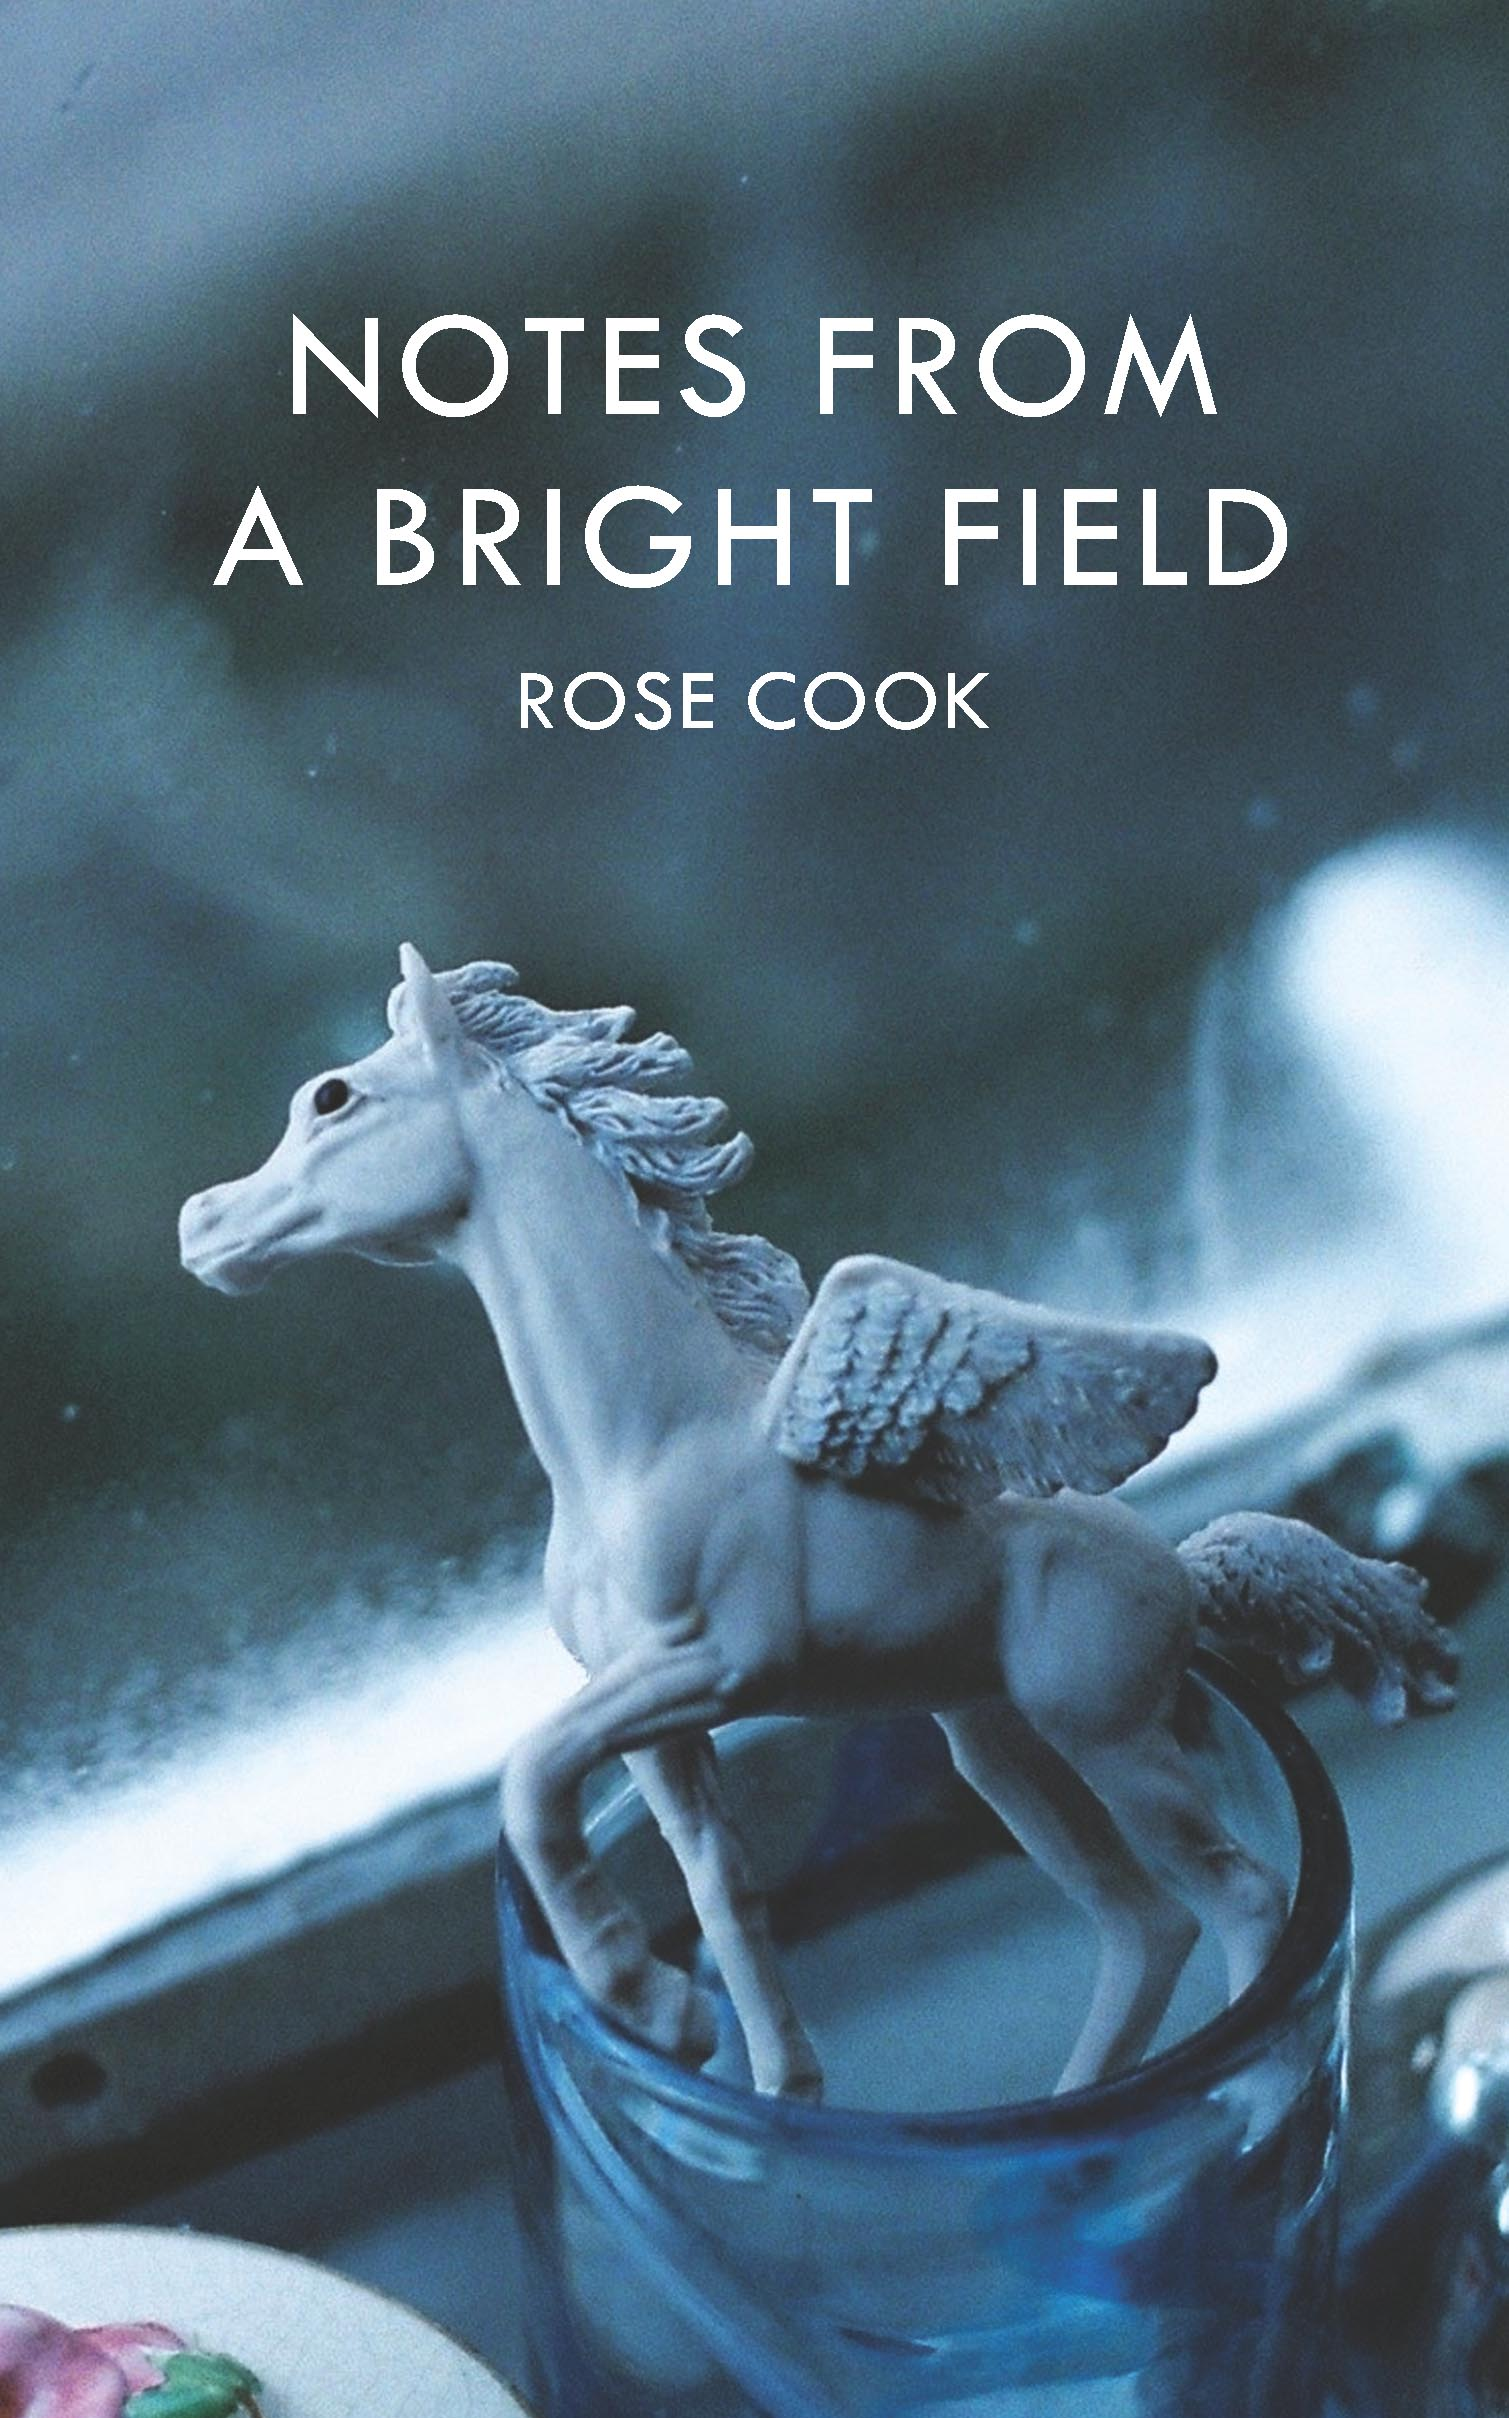 Notes from a Bright Field by Rose Cook